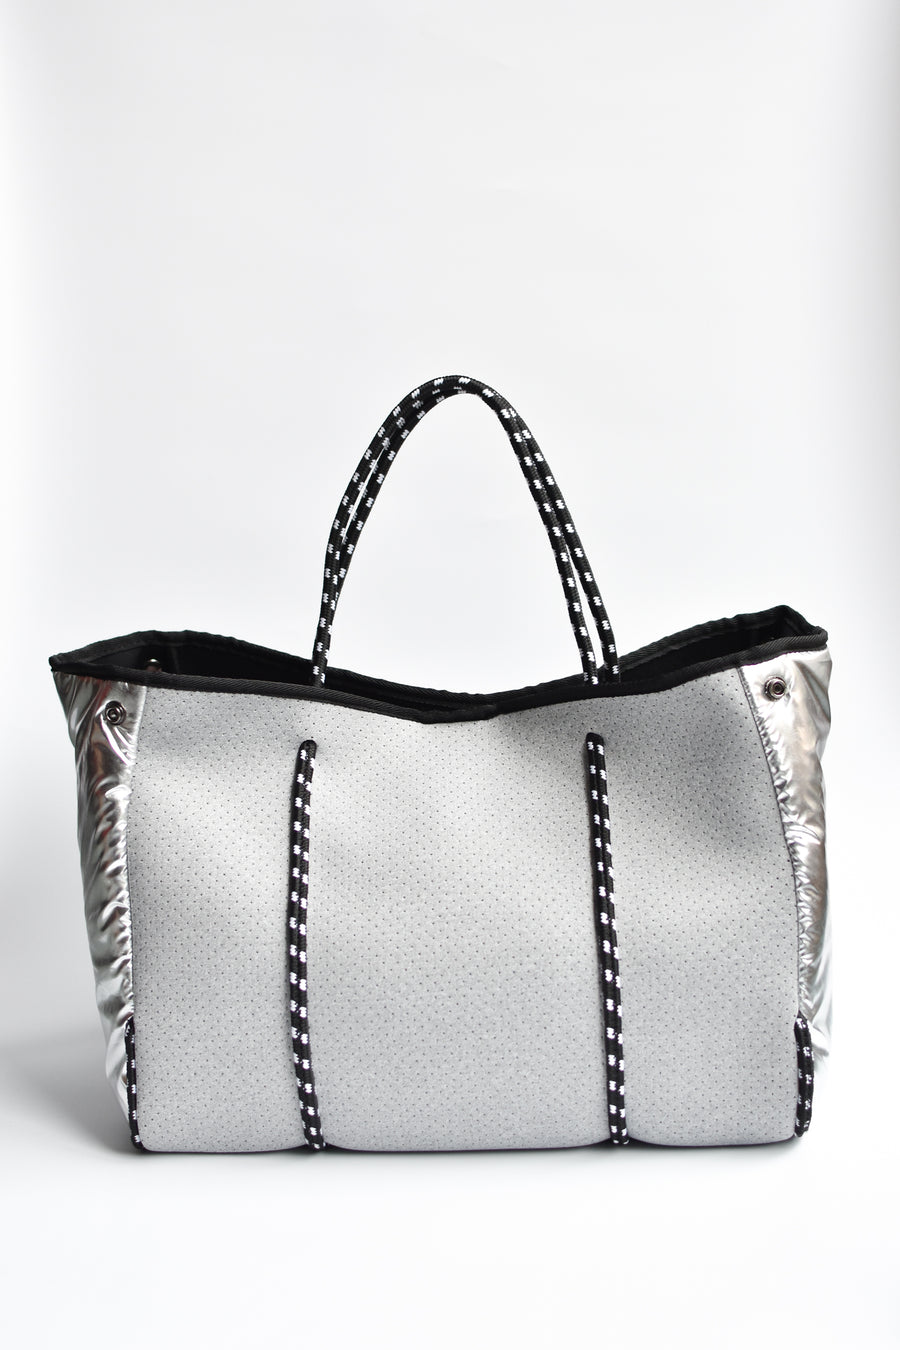 Perforated gray neoprene tote bag with black cord handle and adjustable high shine silver sides.